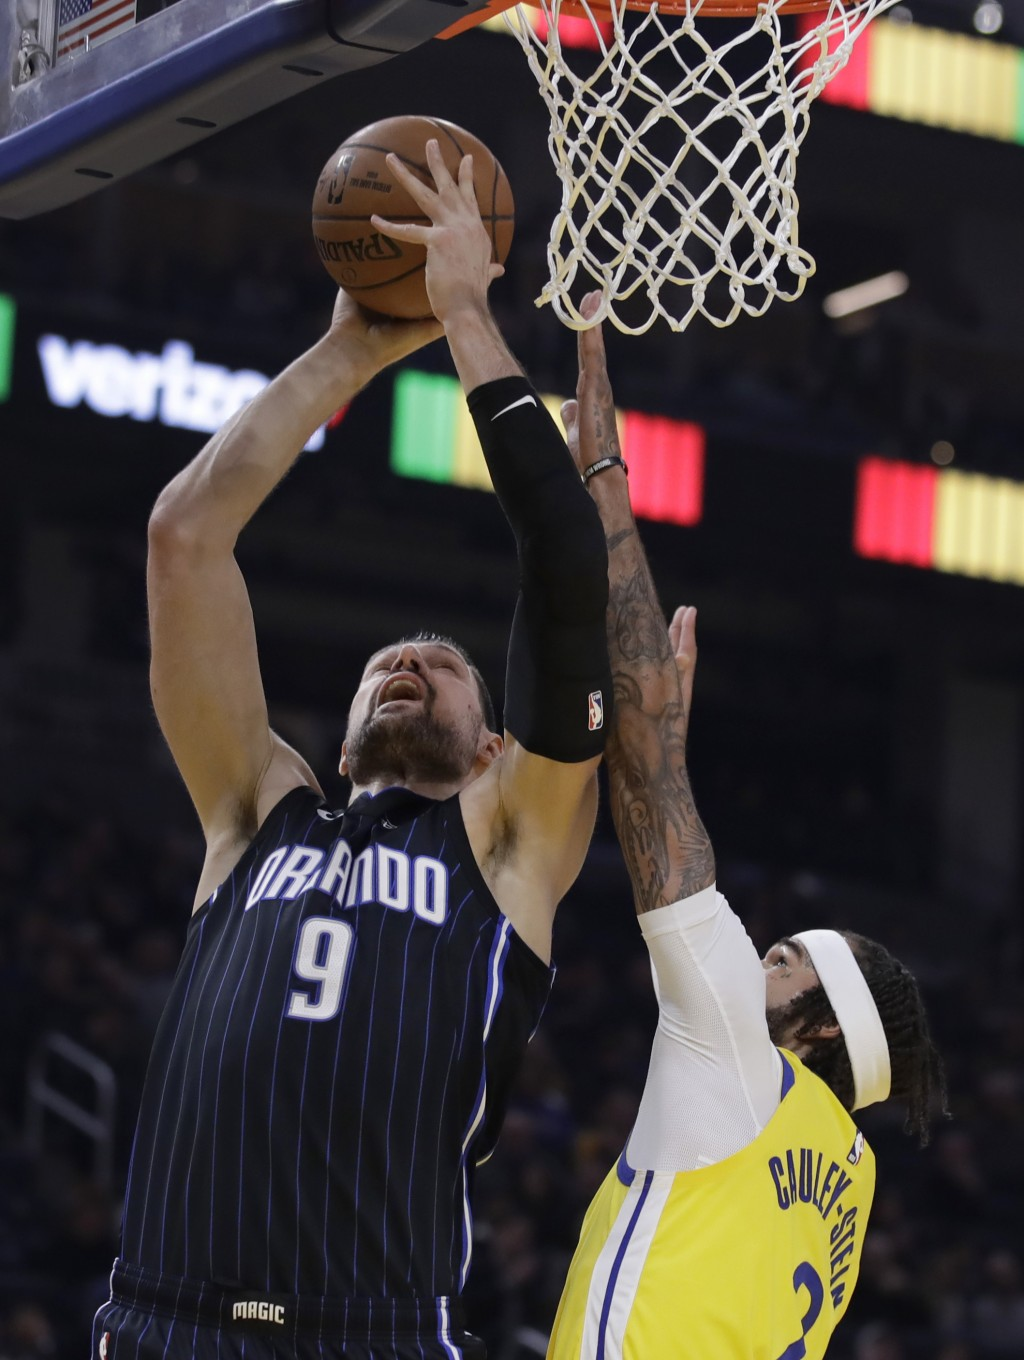 Orlando Magic's Nikola Vucevic (9) shoots against Golden State Warriors' Willie Cauley-Stein during the first half of an NBA basketball game Saturday,...